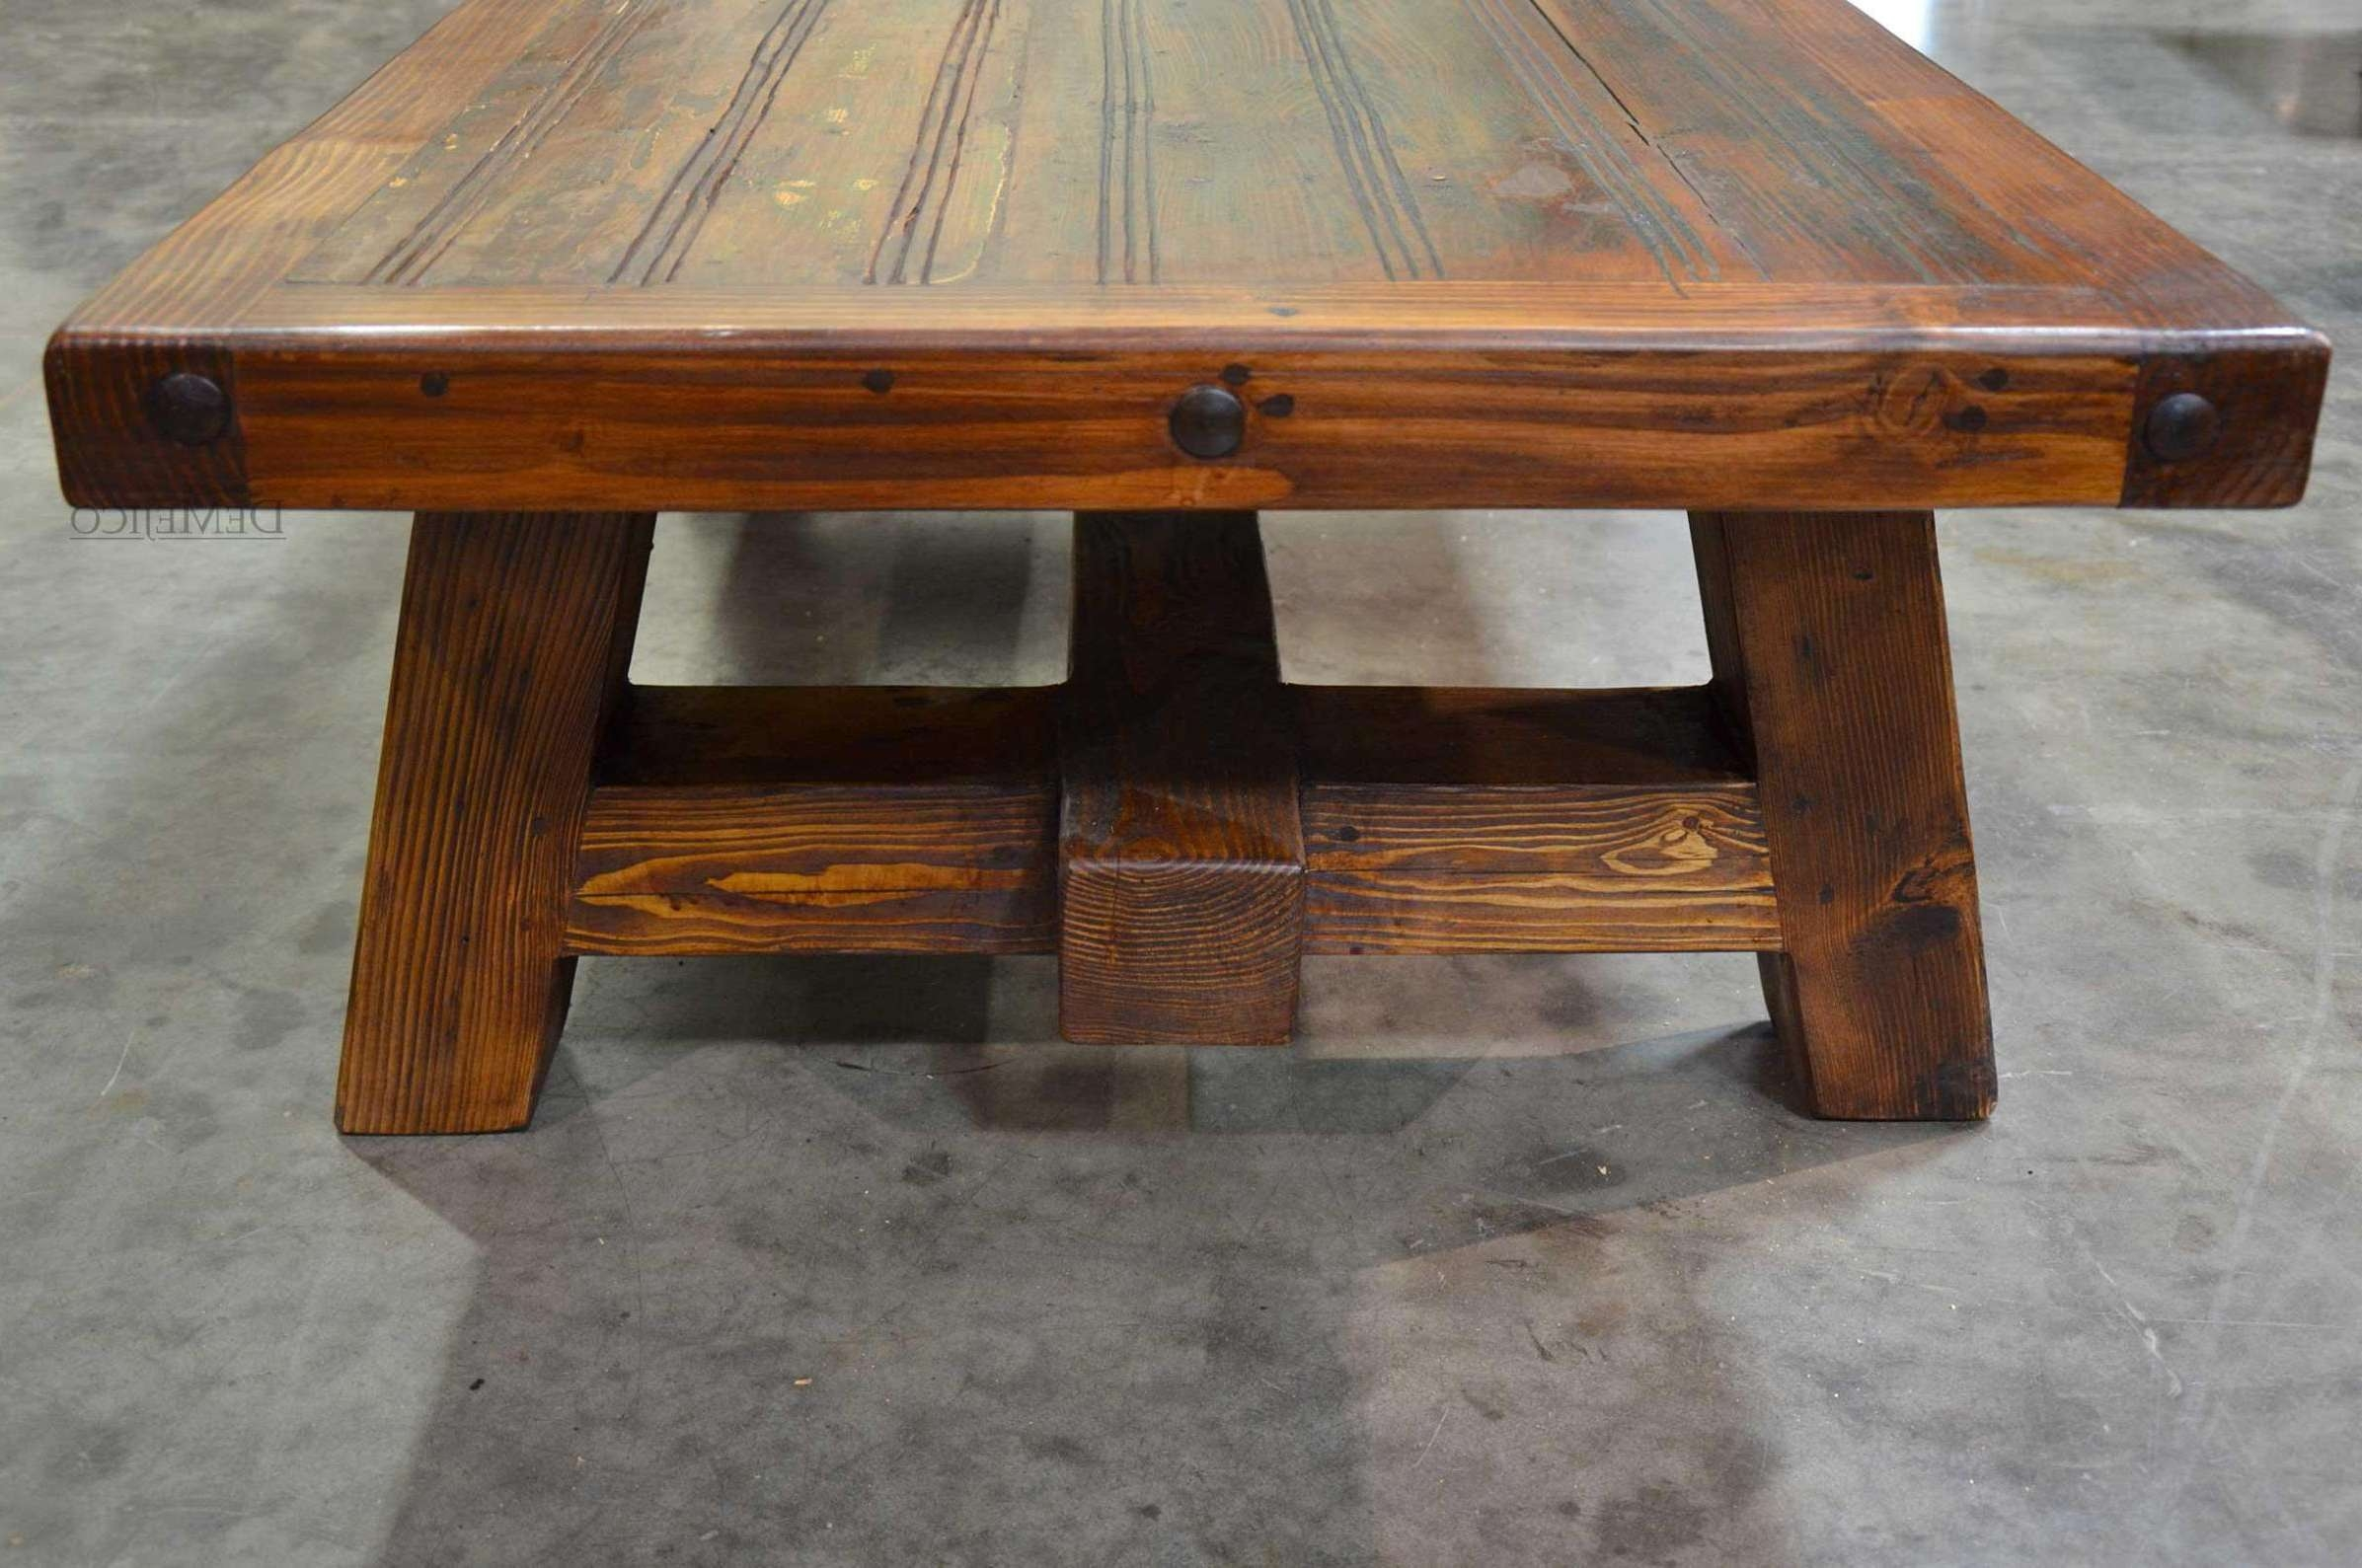 Well Known Reclaimed Wood Coffee Tables With Regard To Coffee Tables : Reclaimed Wood Square Coffee Table Rustic With (View 19 of 20)